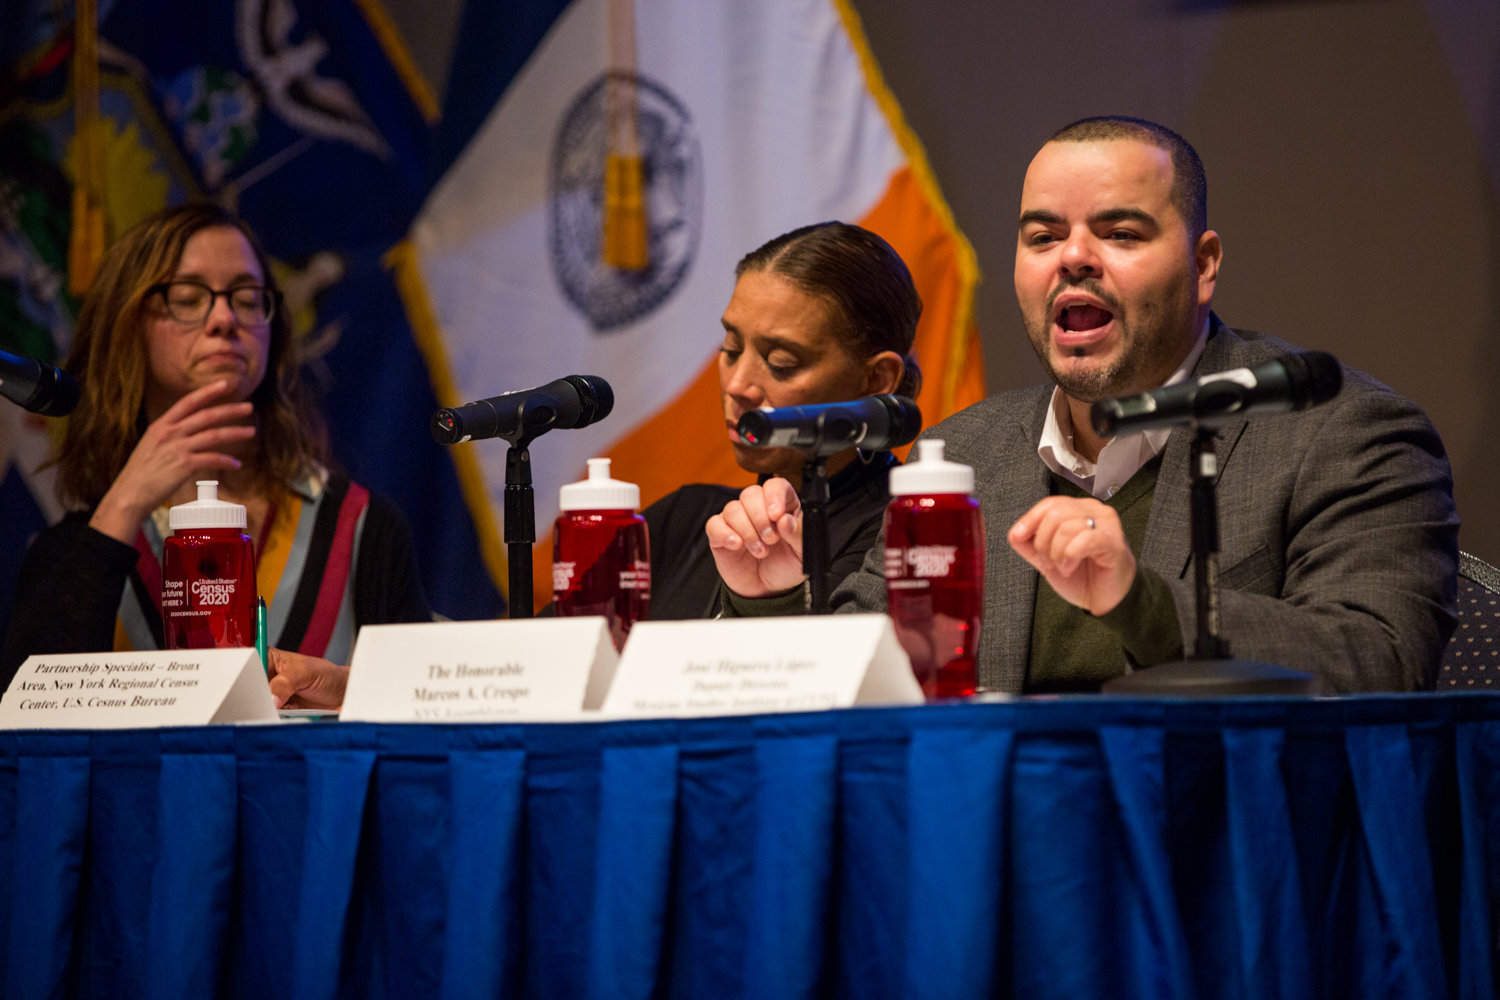 Assemblyman Marcos Crespo emphasizes the necessity of getting an accurate count for the census during a panel discussion at Lehman College, and how marginalized communities are disproportionately affected by being undercounted.